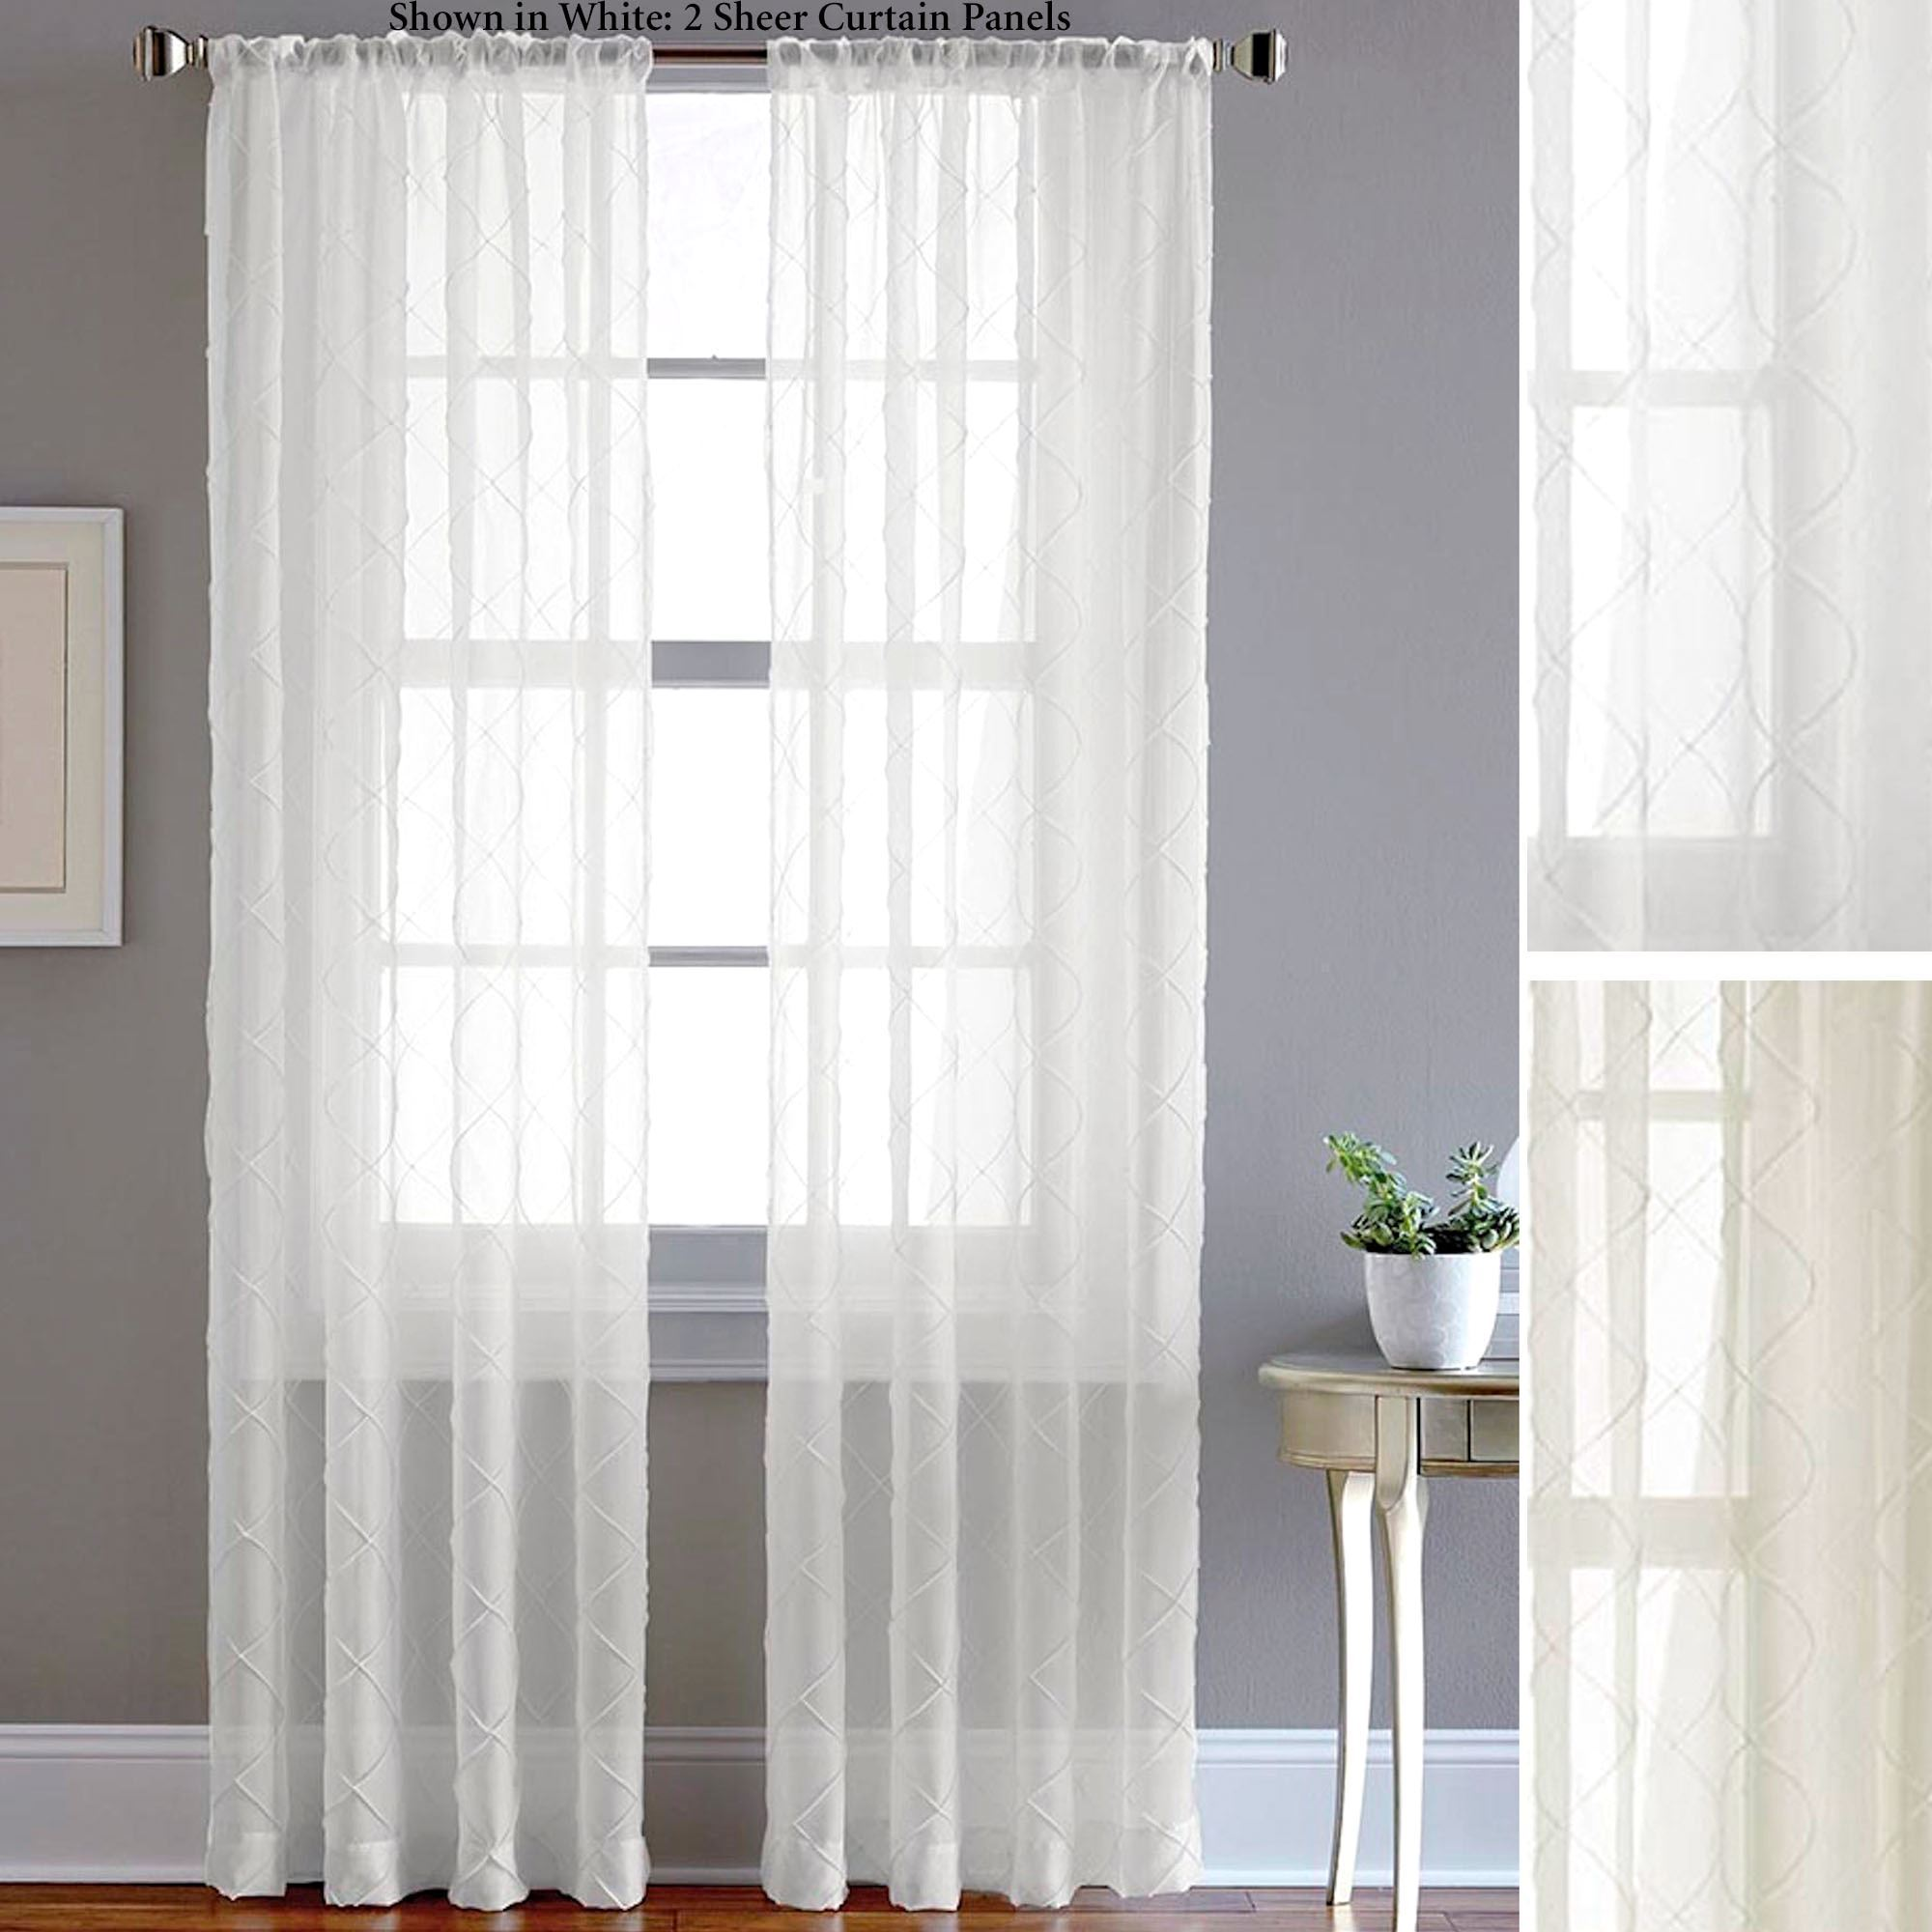 american free voile item living curtain solid shipping champagne window home bedroom country linen in color curtains garden from room sheer